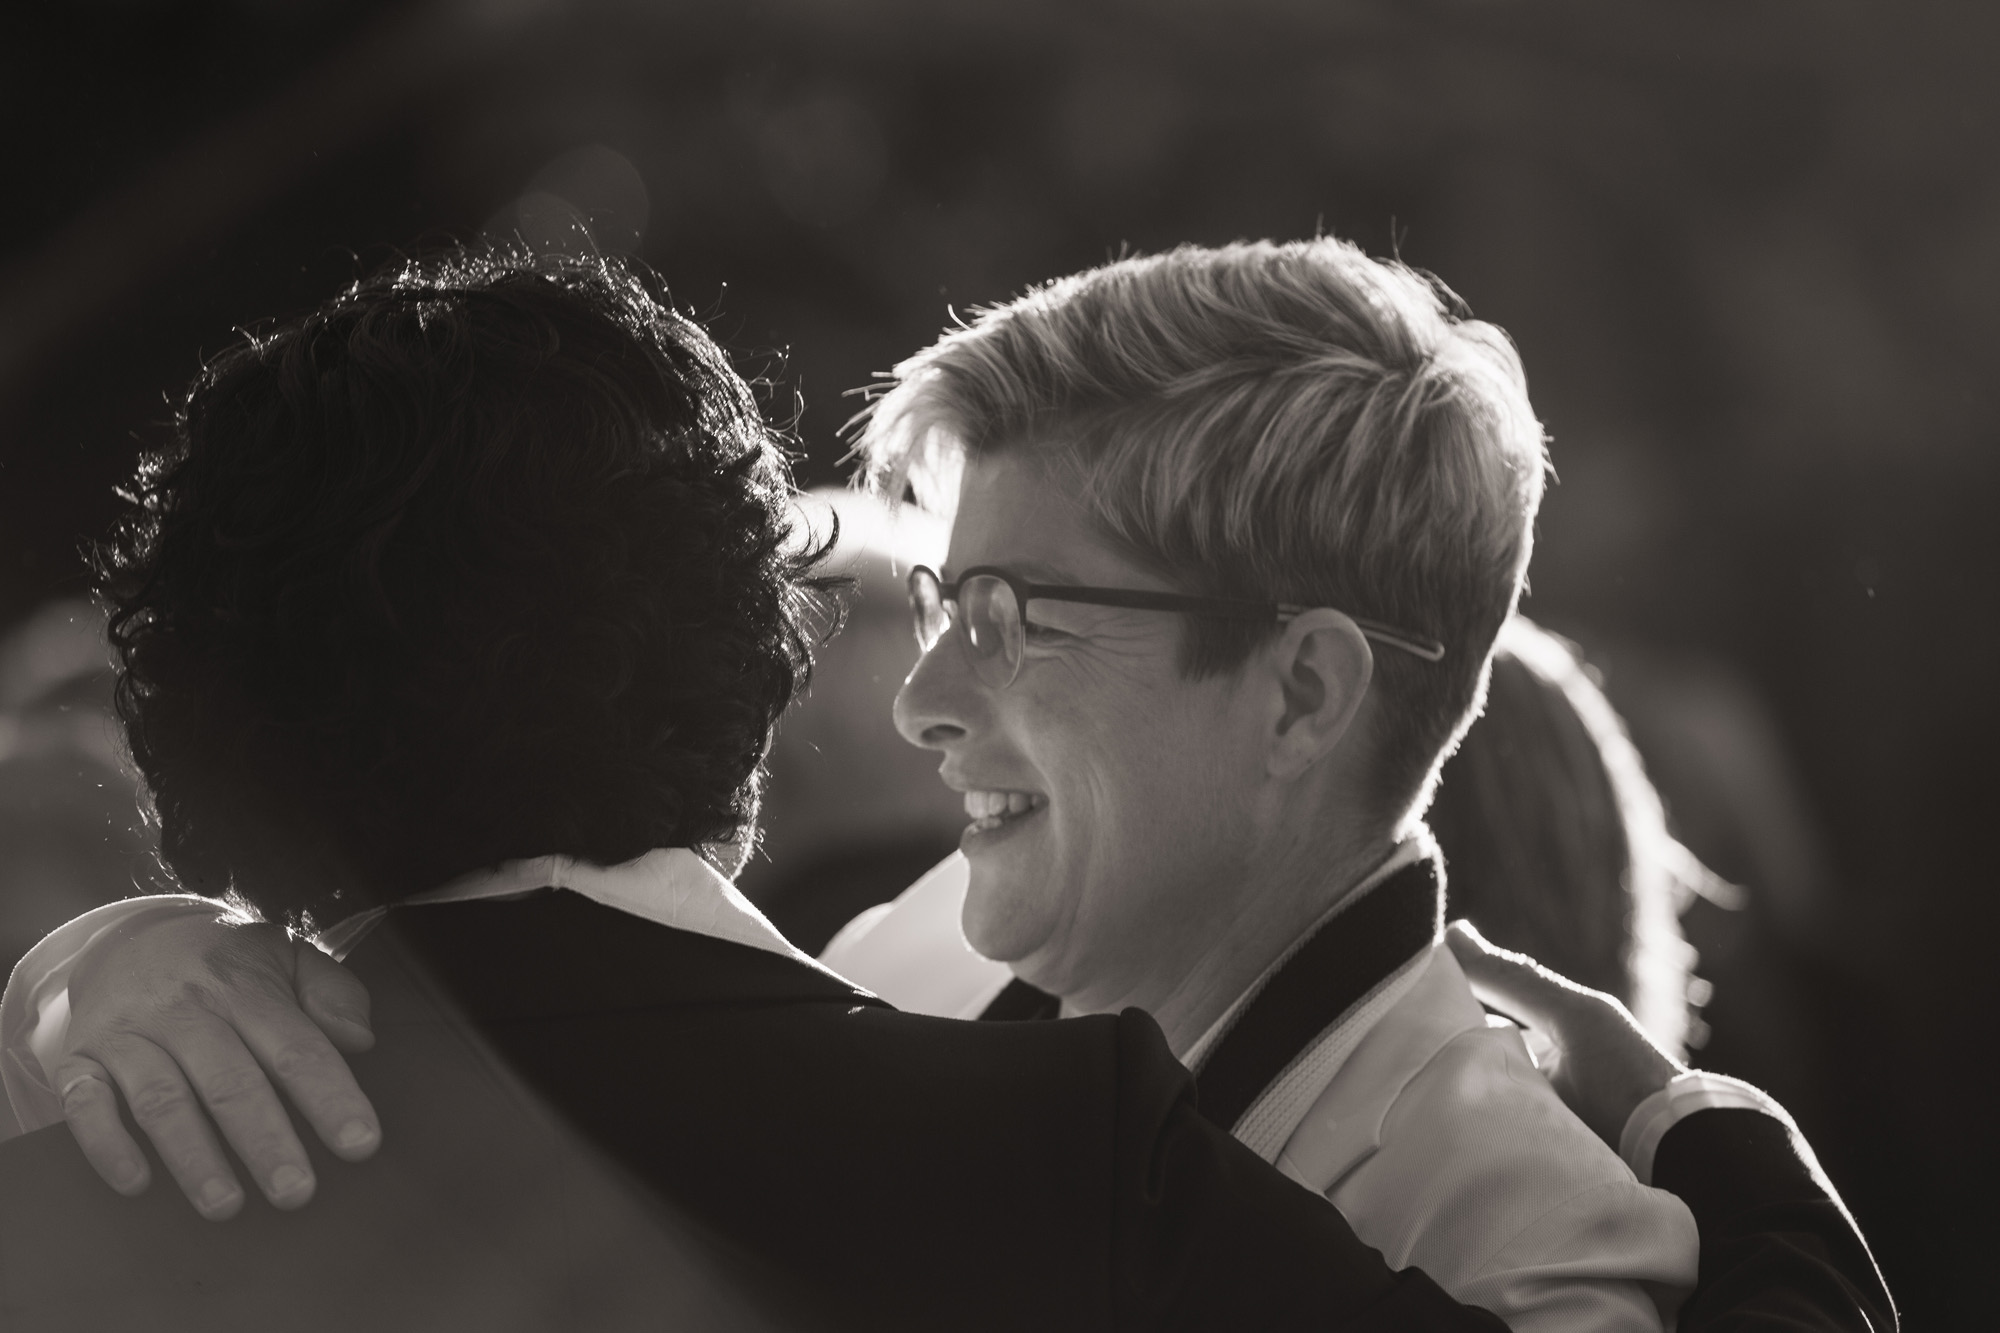 wedding_same_sex_photographer.jpg